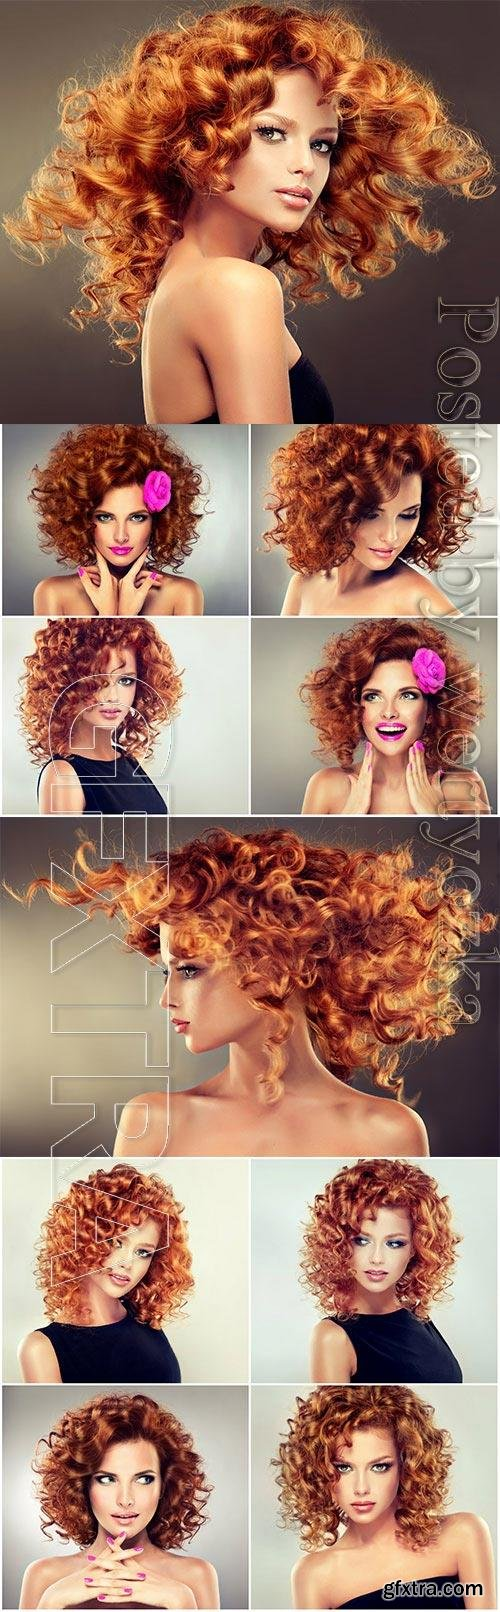 Fiery red hair of a beautiful girl stock photo